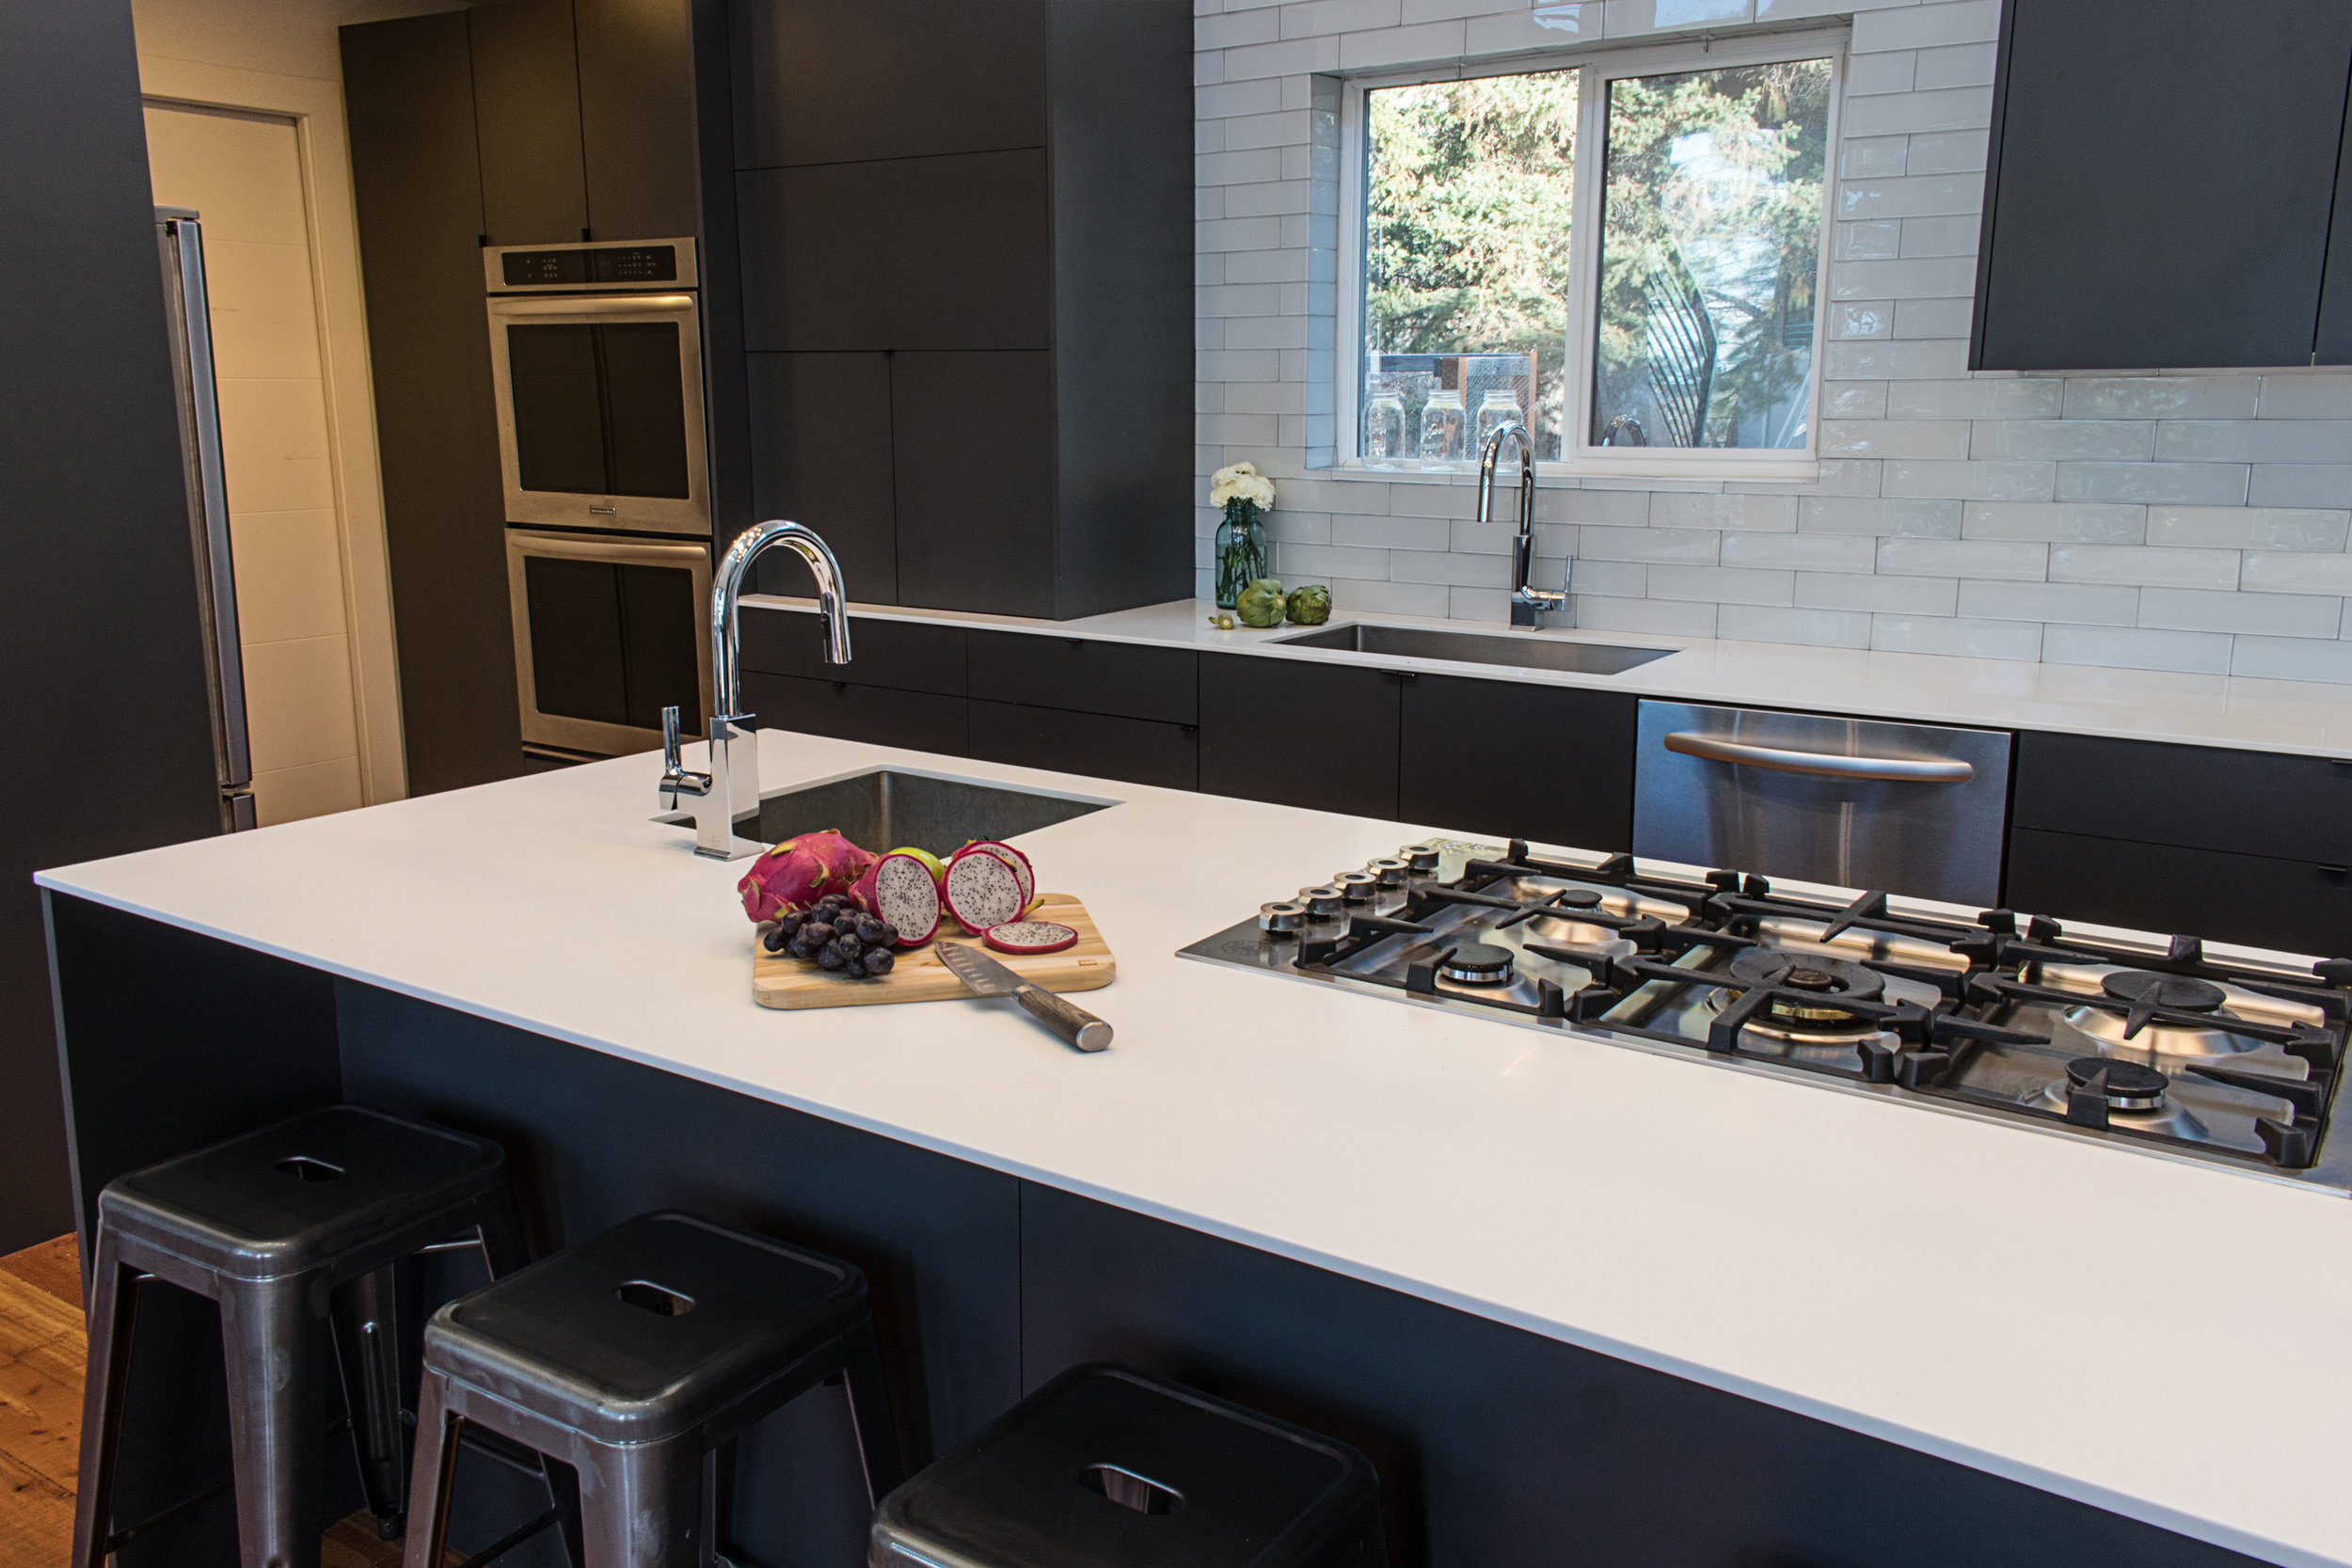 SLC_Kitchen12.jpg